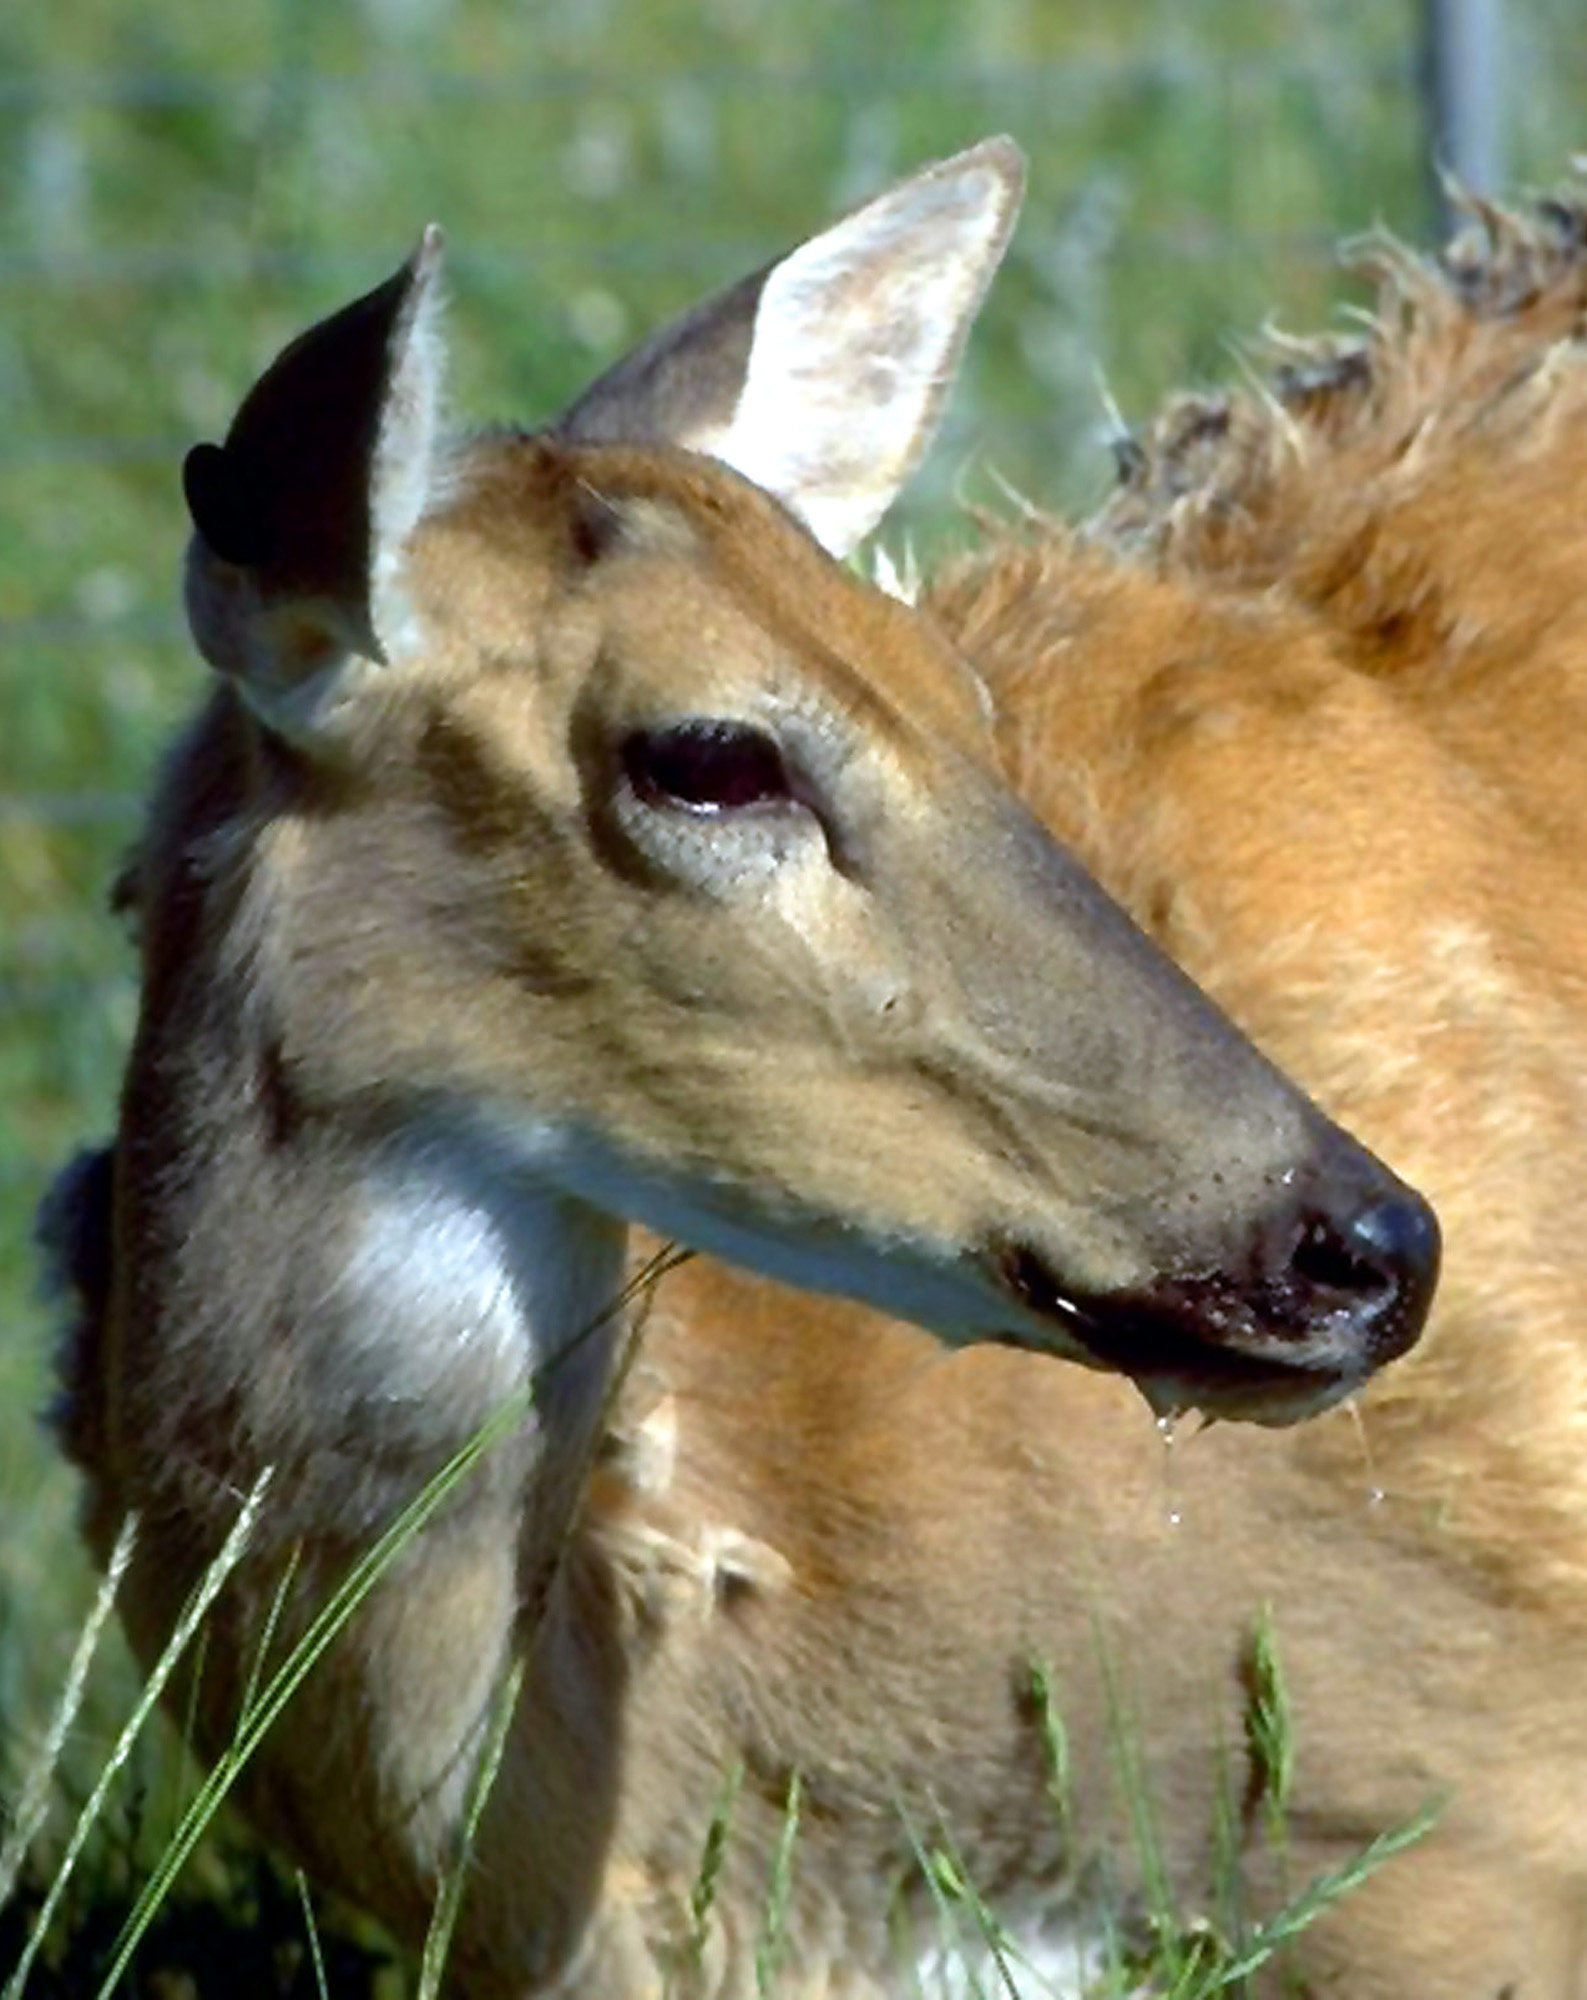 A white-tailed deer showing symptoms of chronic wasting disease, including drooling, is shown in this undated file photo prov